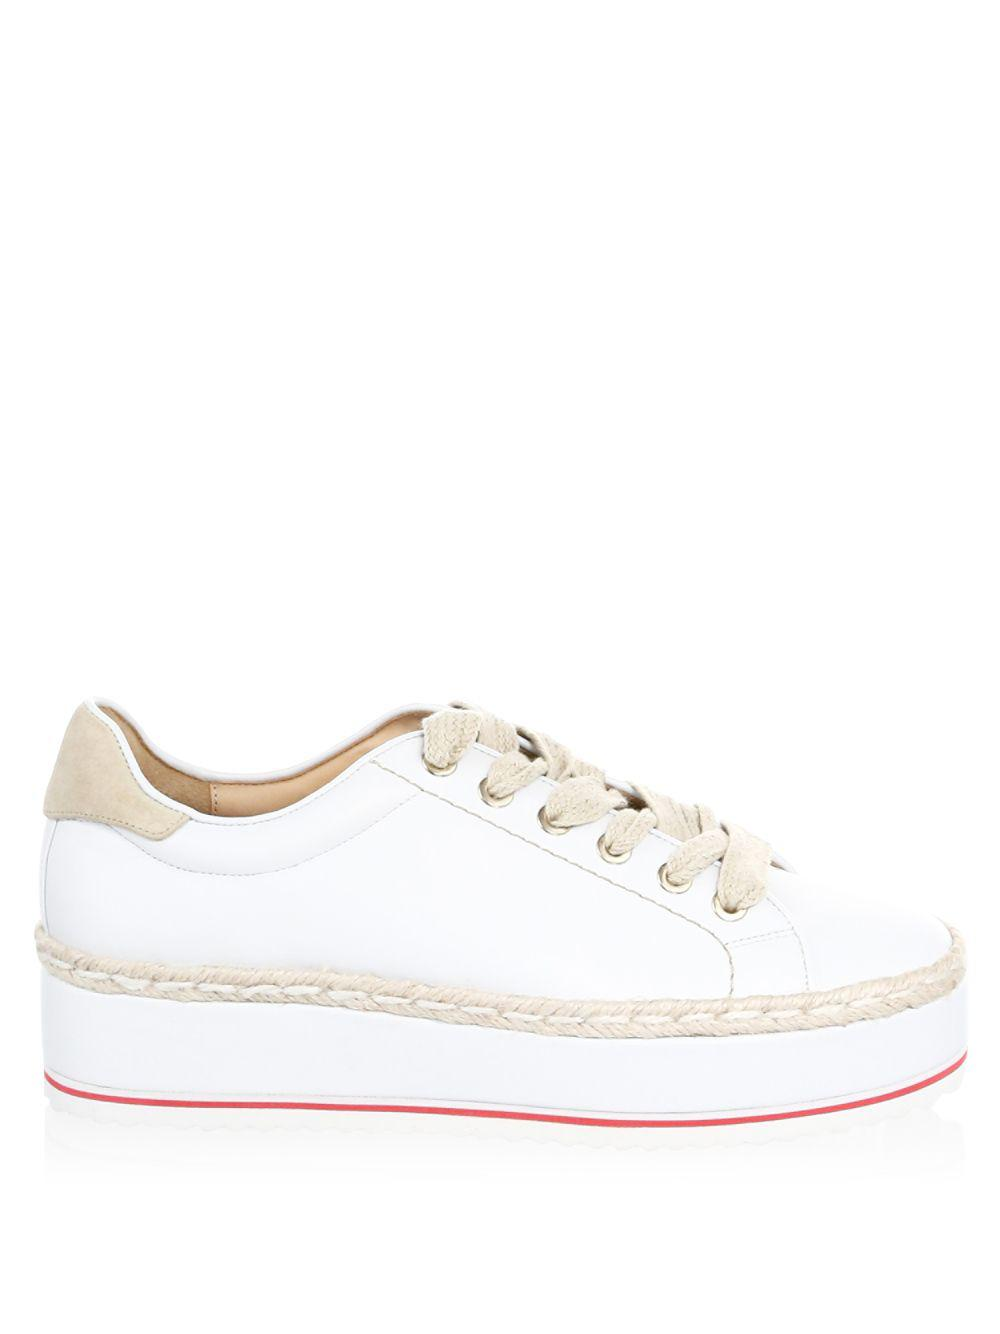 Joie Leather Dabnis Espadrille Platform Sneakers in White